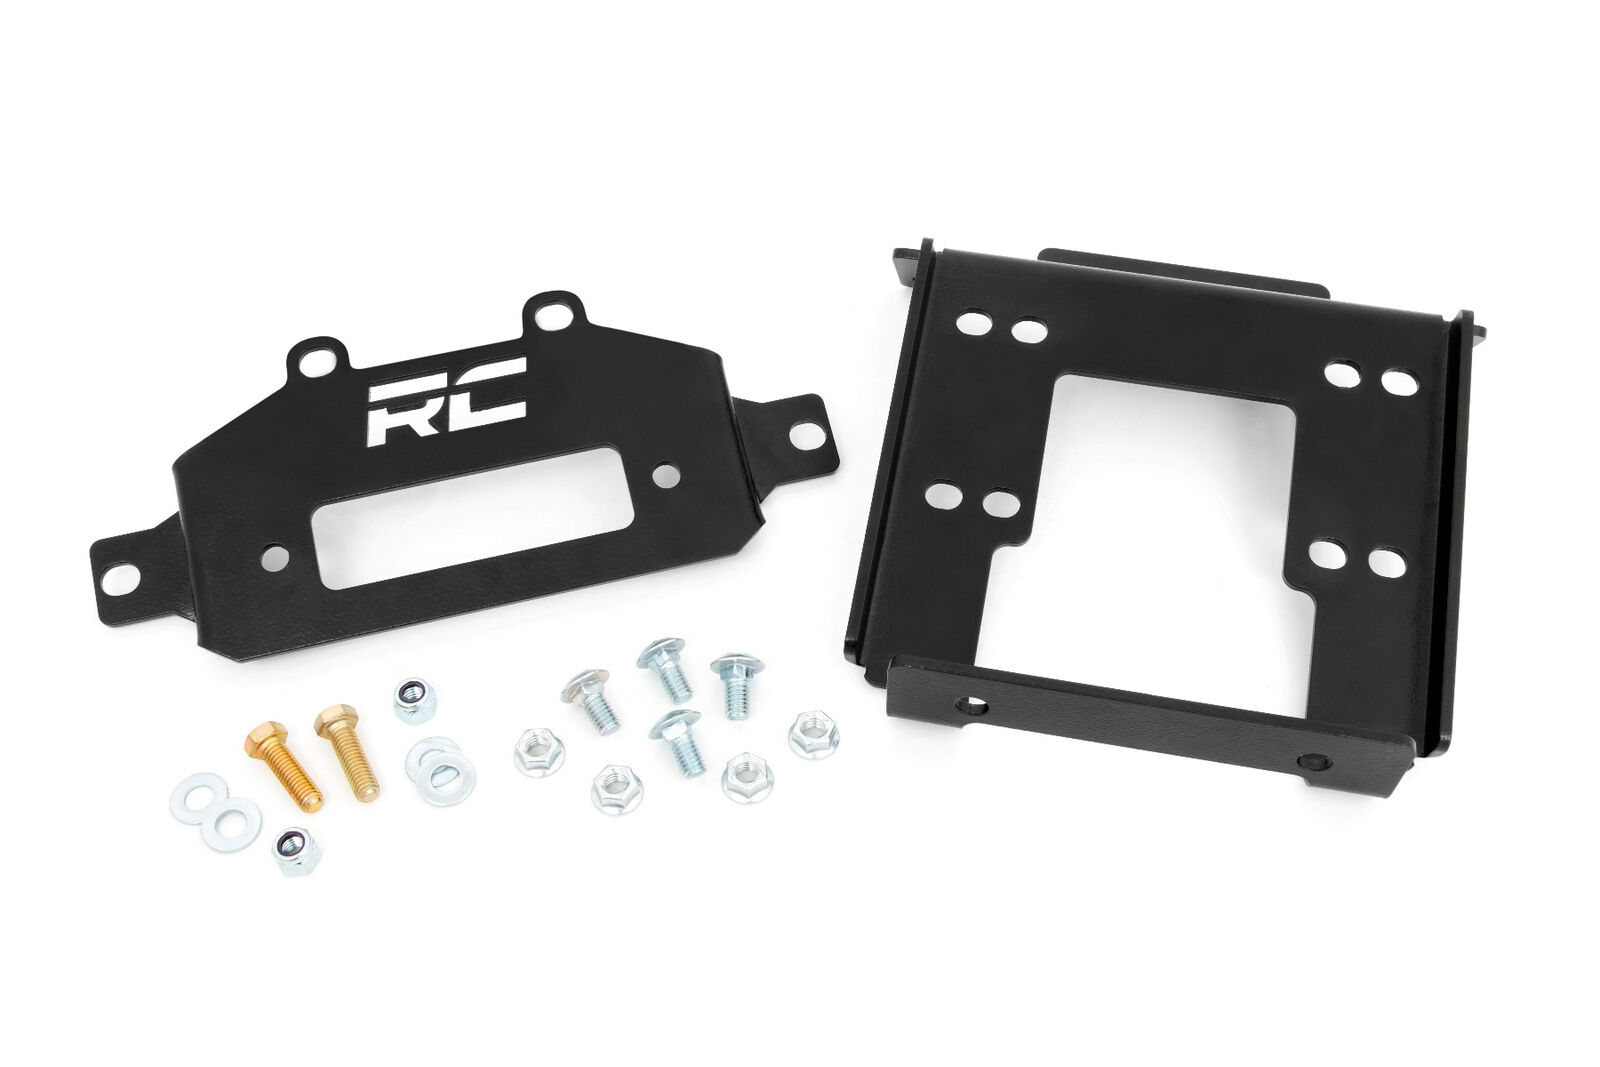 Rough Country Winch Mounting Plate for 2017-2020 Can-Am Maverick X3-97028